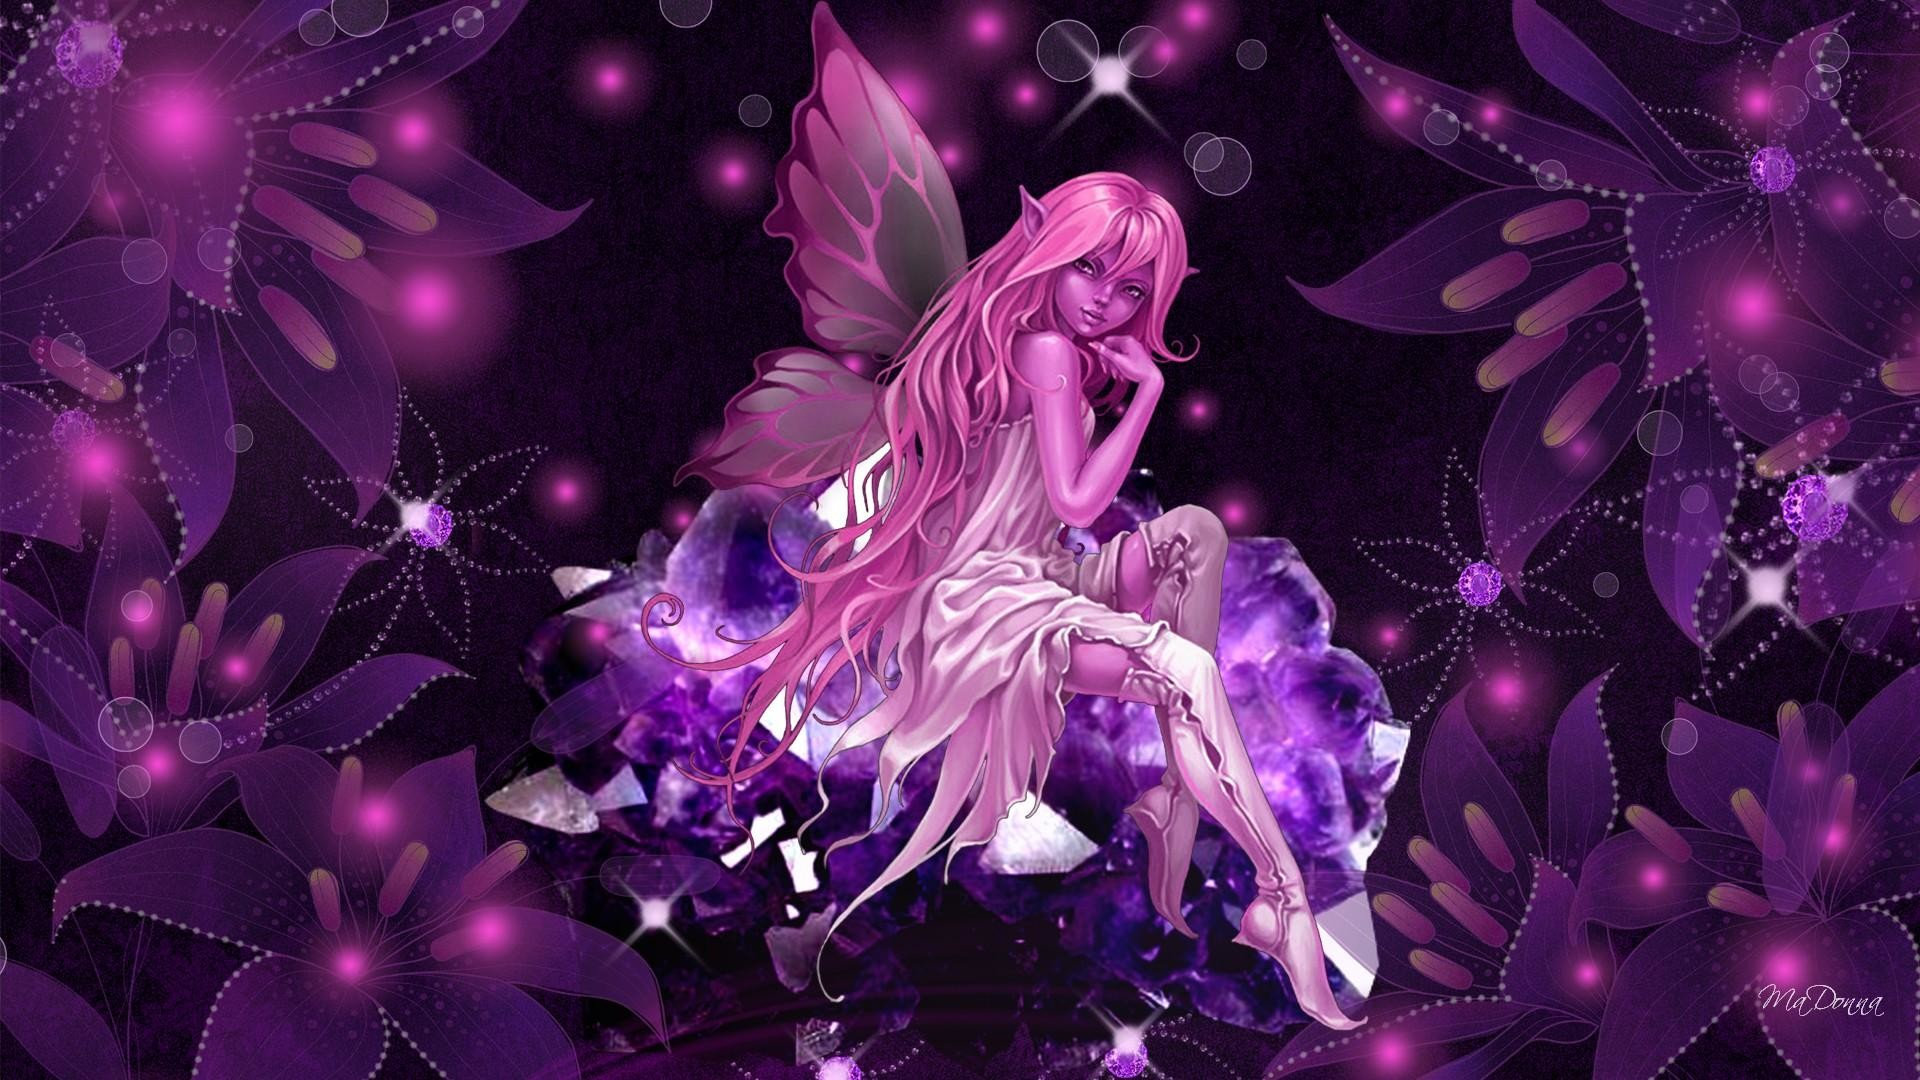 Hd fairy wallpaper 62 images 1920x1080 butterfly fairy wallpaper hd pink crystal fairy wallpaper voltagebd Image collections